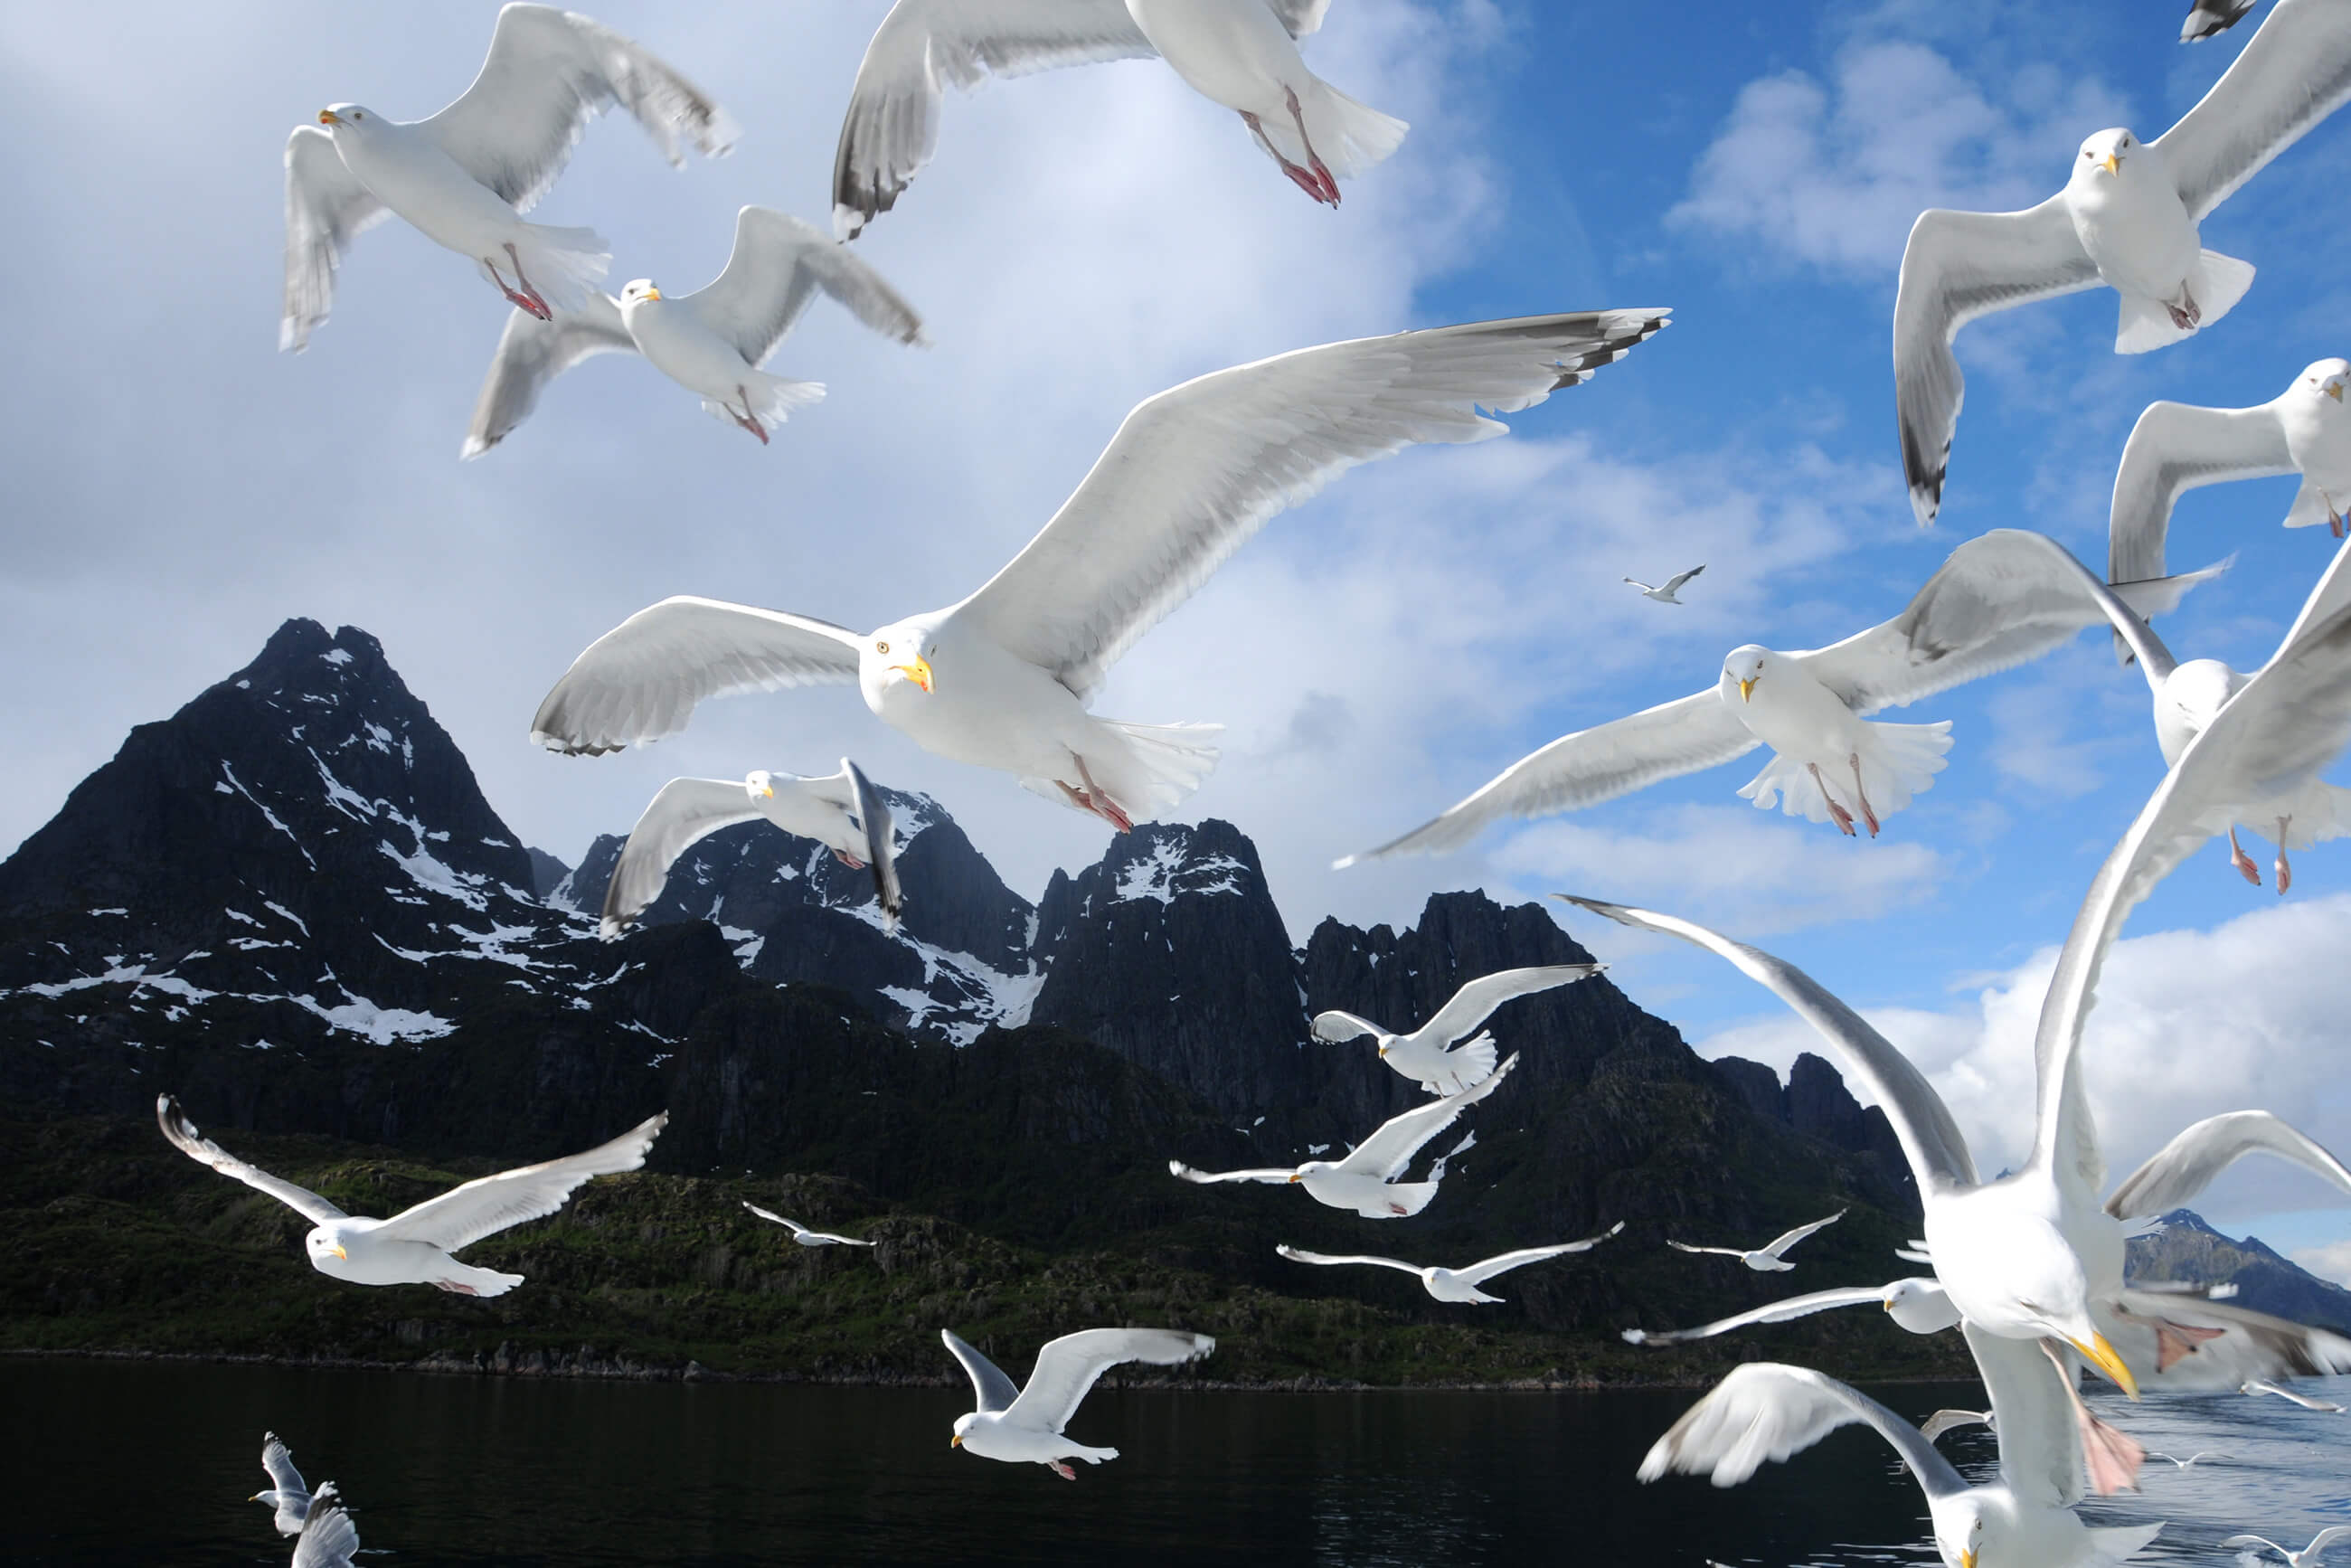 https://bubo.sk/uploads/galleries/5044/seagulls-trollfjorden-norway-hgr-109856--photo_photo_competition-1-.jpg